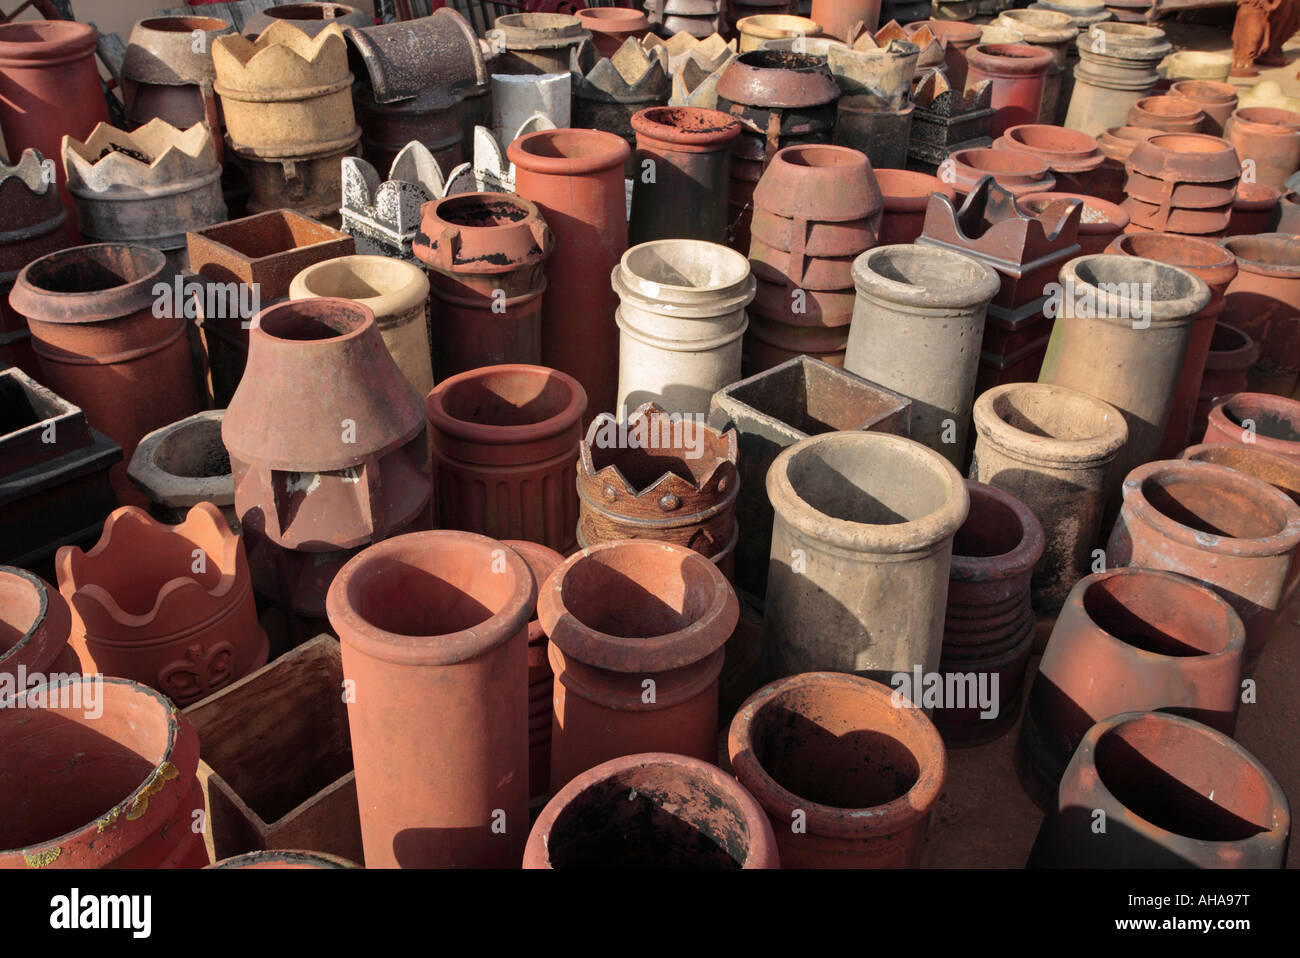 An array of old chimney pots. - Stock Image